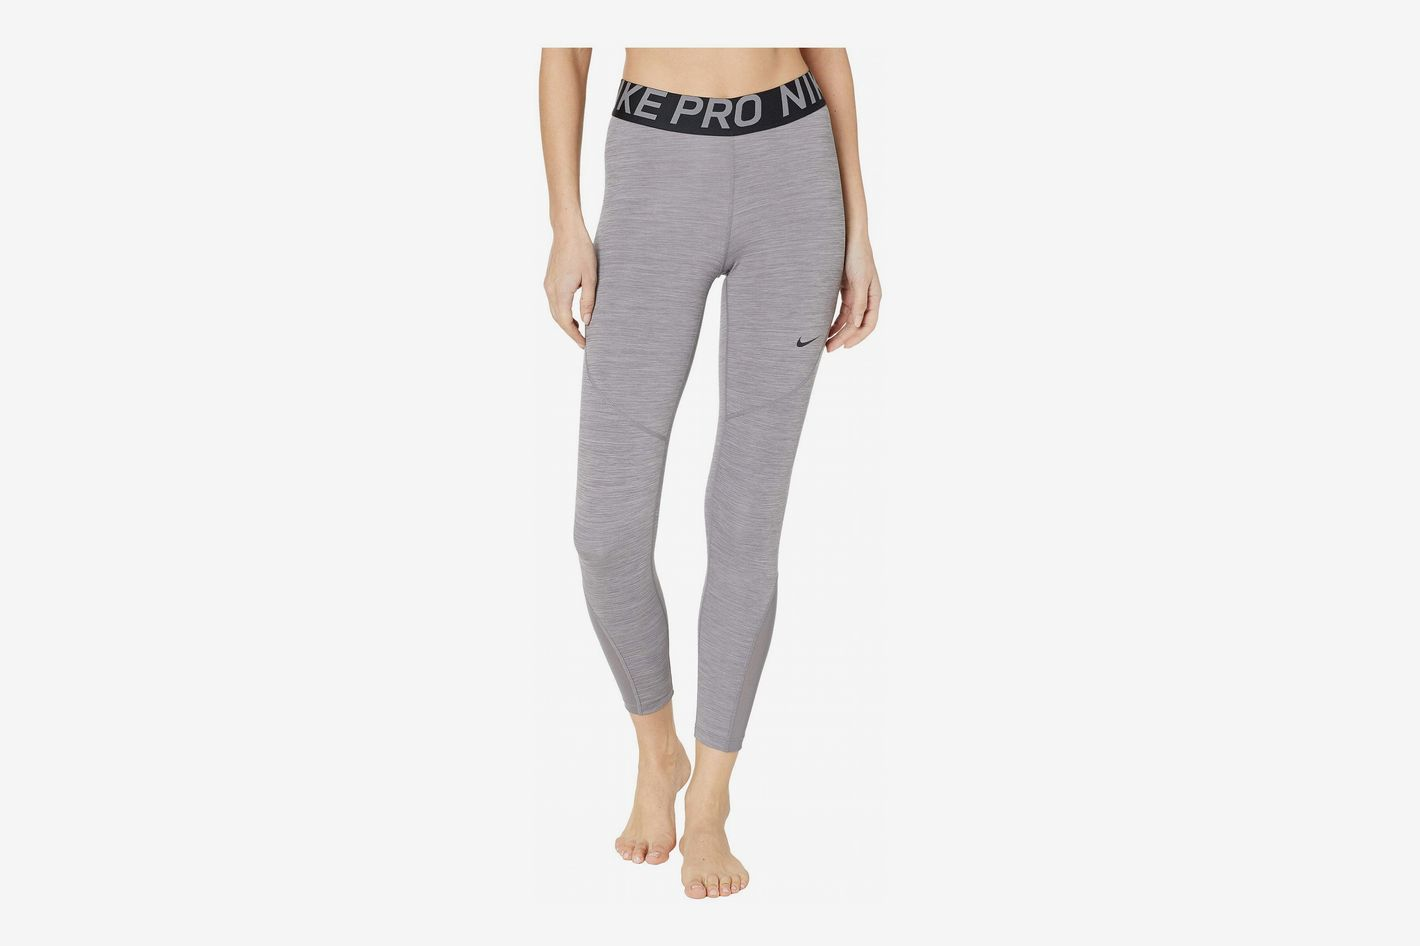 5c4402fecf3704 The 13 Best Workout Leggings for Running and Yoga 2019